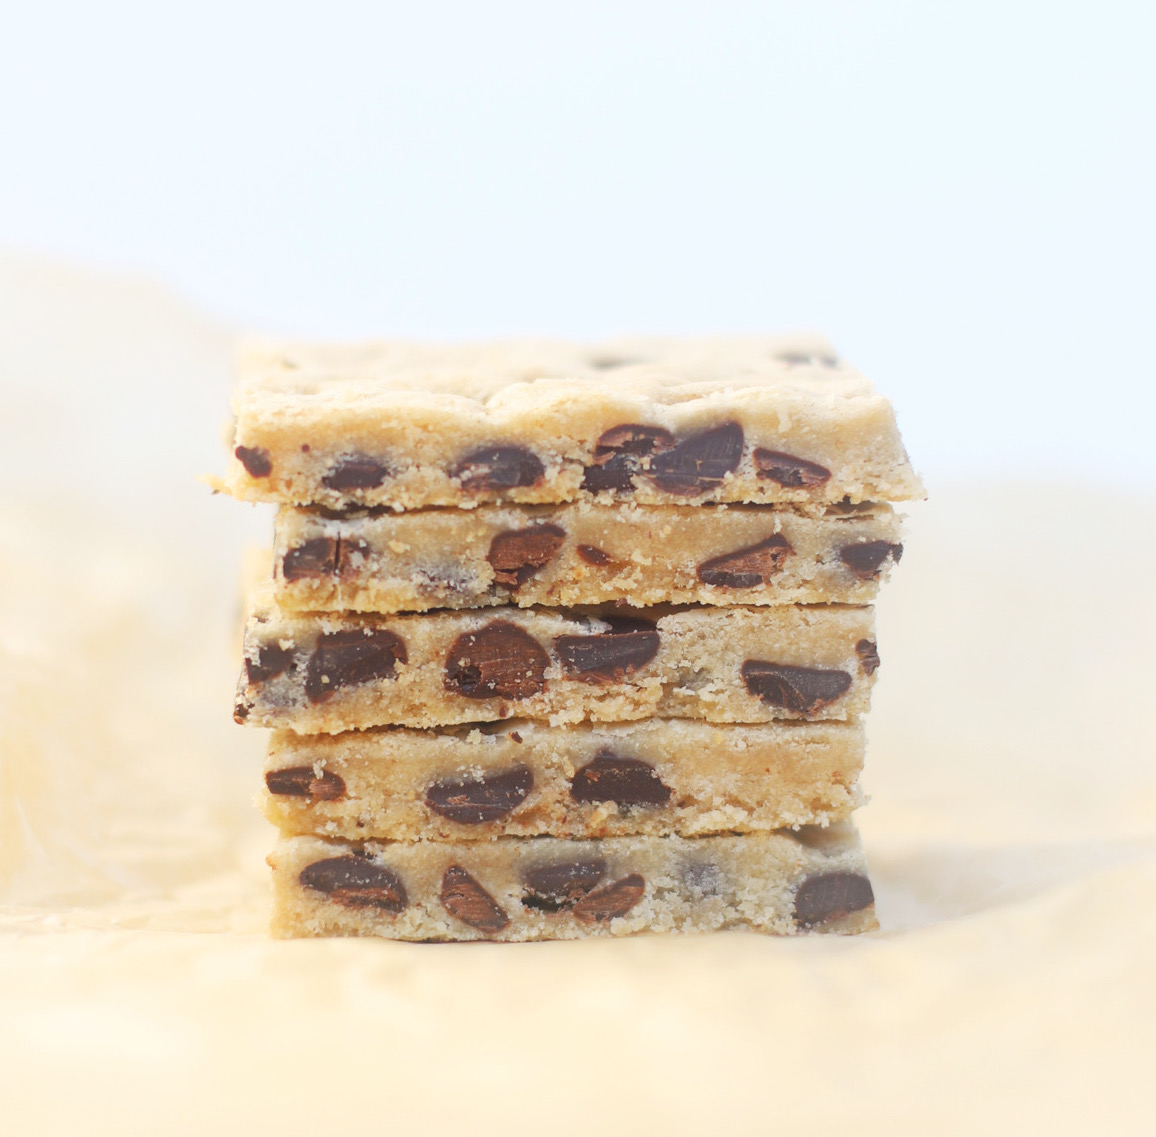 The Yummiest Vegan Chocolate Chip Cookie Bars